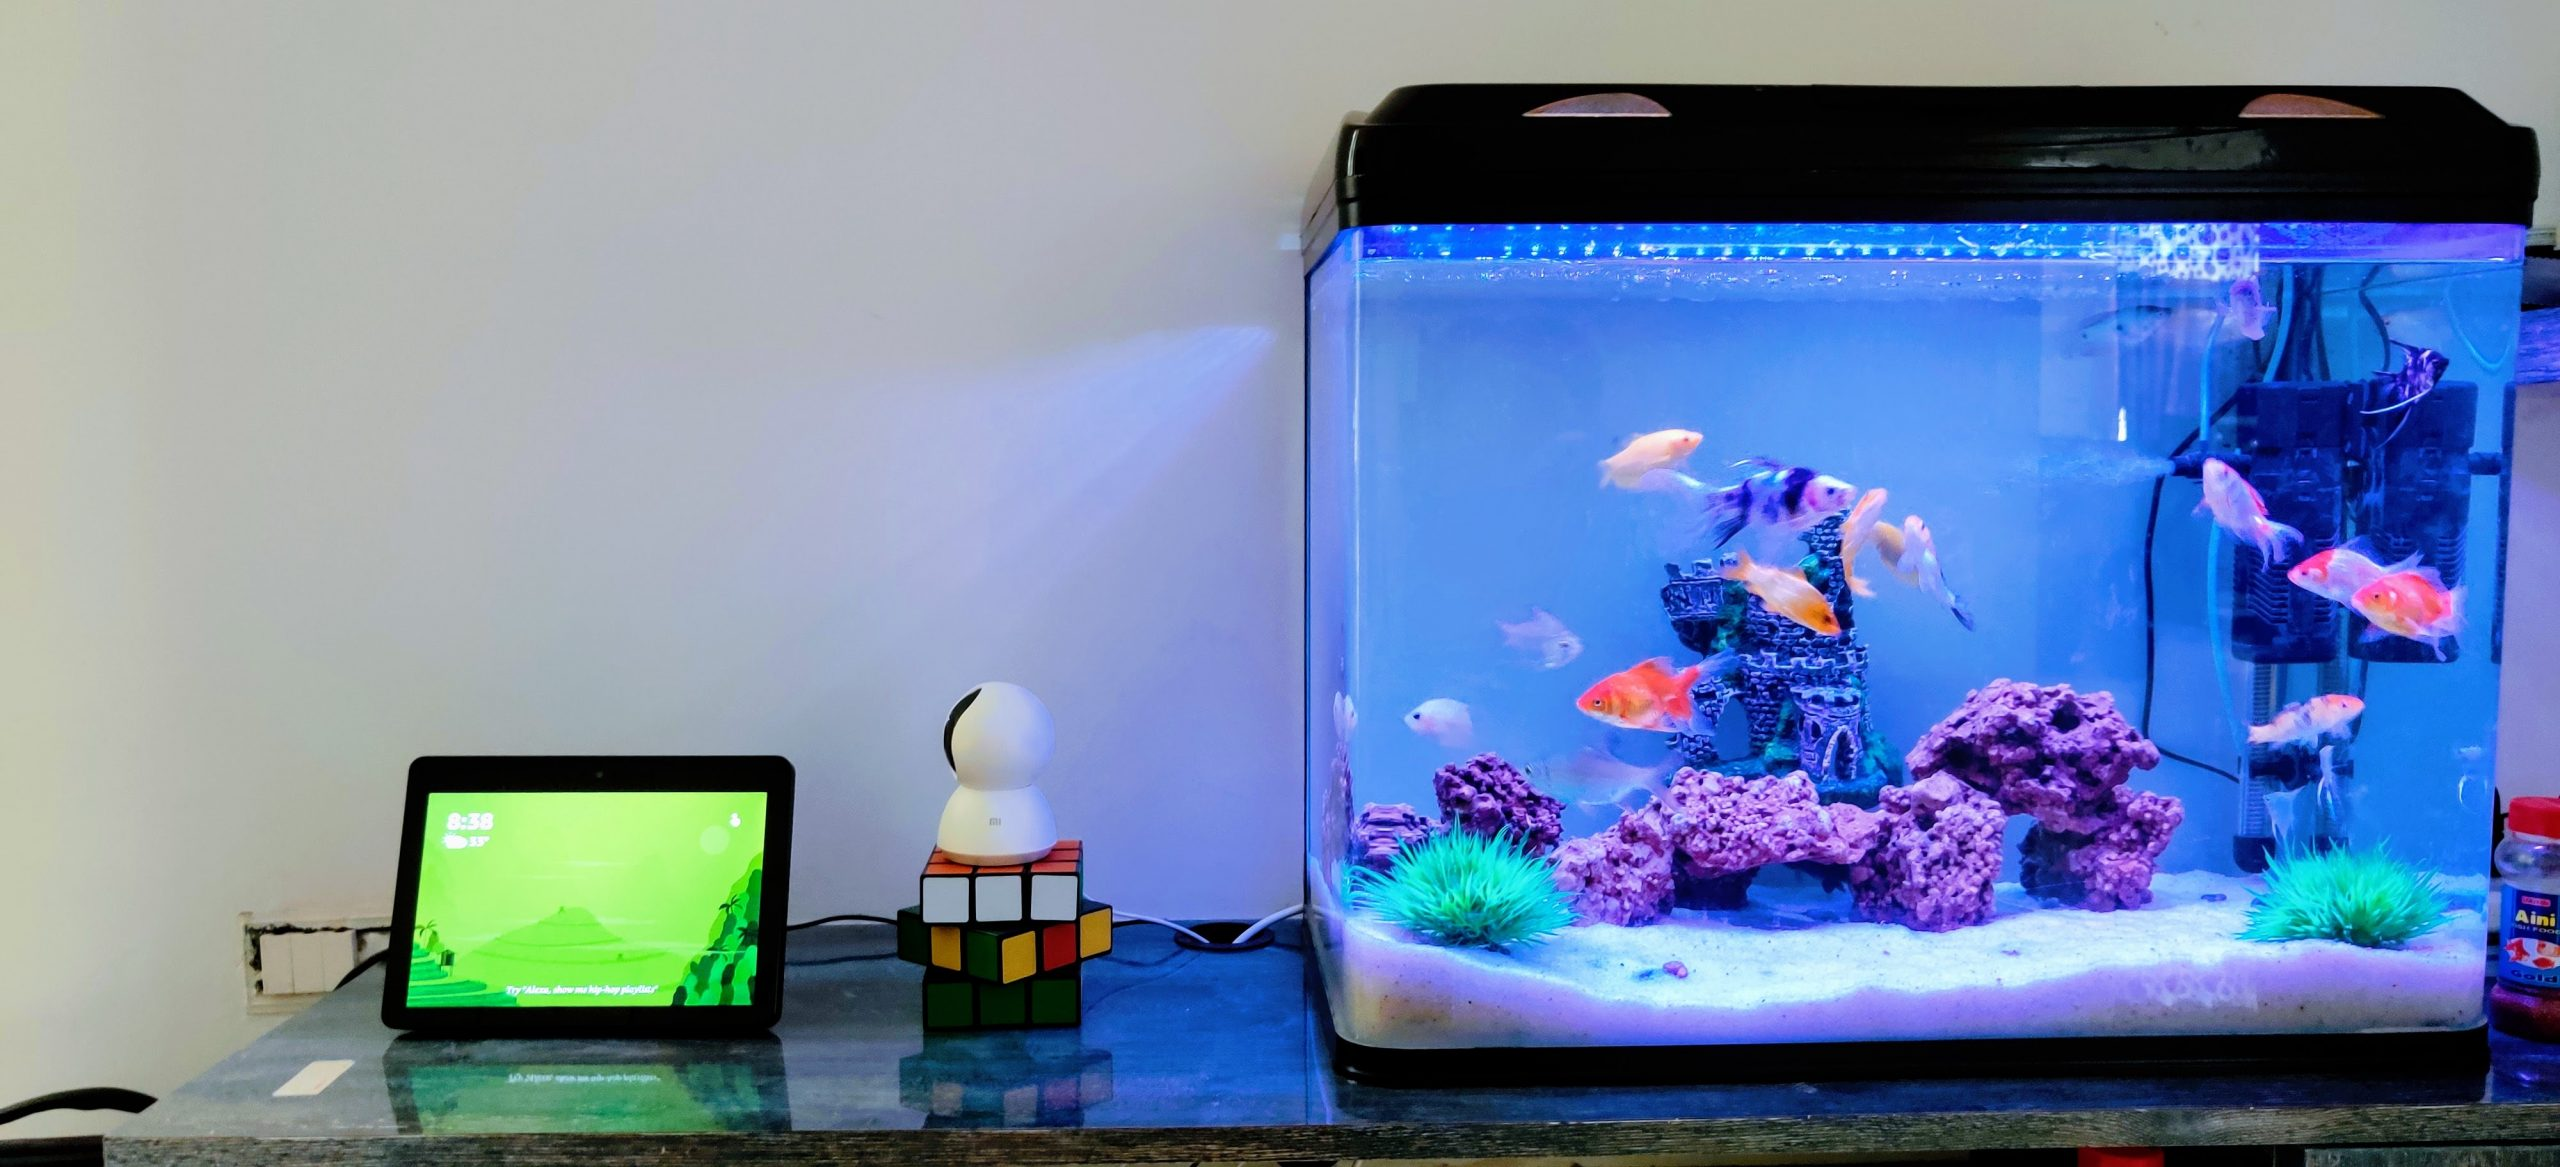 clear glass fish tank with blue fish